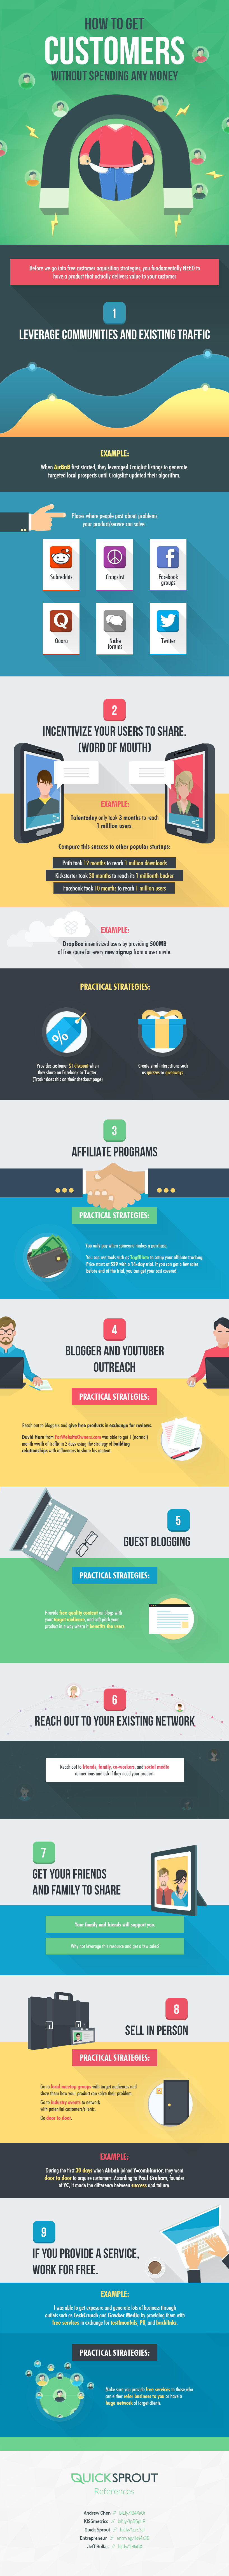 Infographic: 9 No-Cost Customer Acquisition Tactics